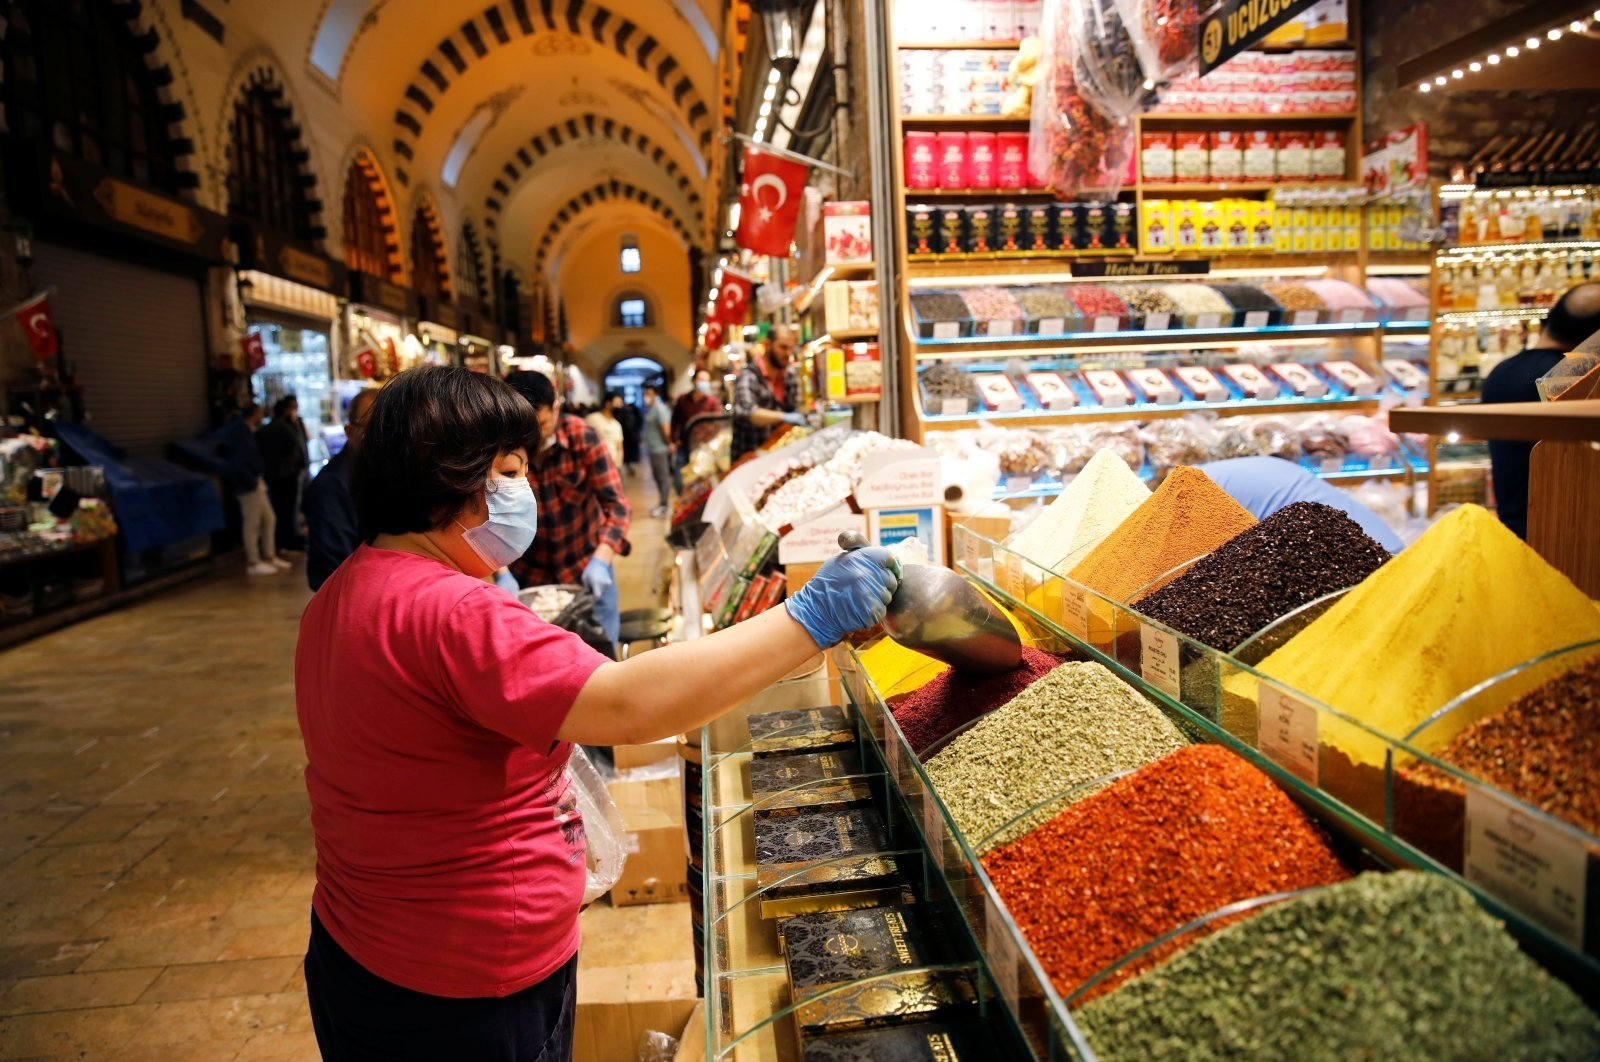 A vendor adds spices at a stall at the spice market, also known as the Egyptian Bazaar, after it reopened following weeks of closure due to the COVID-19 pandemic, Istanbul, Turkey, June 1, 2020. (Reuters Photo)